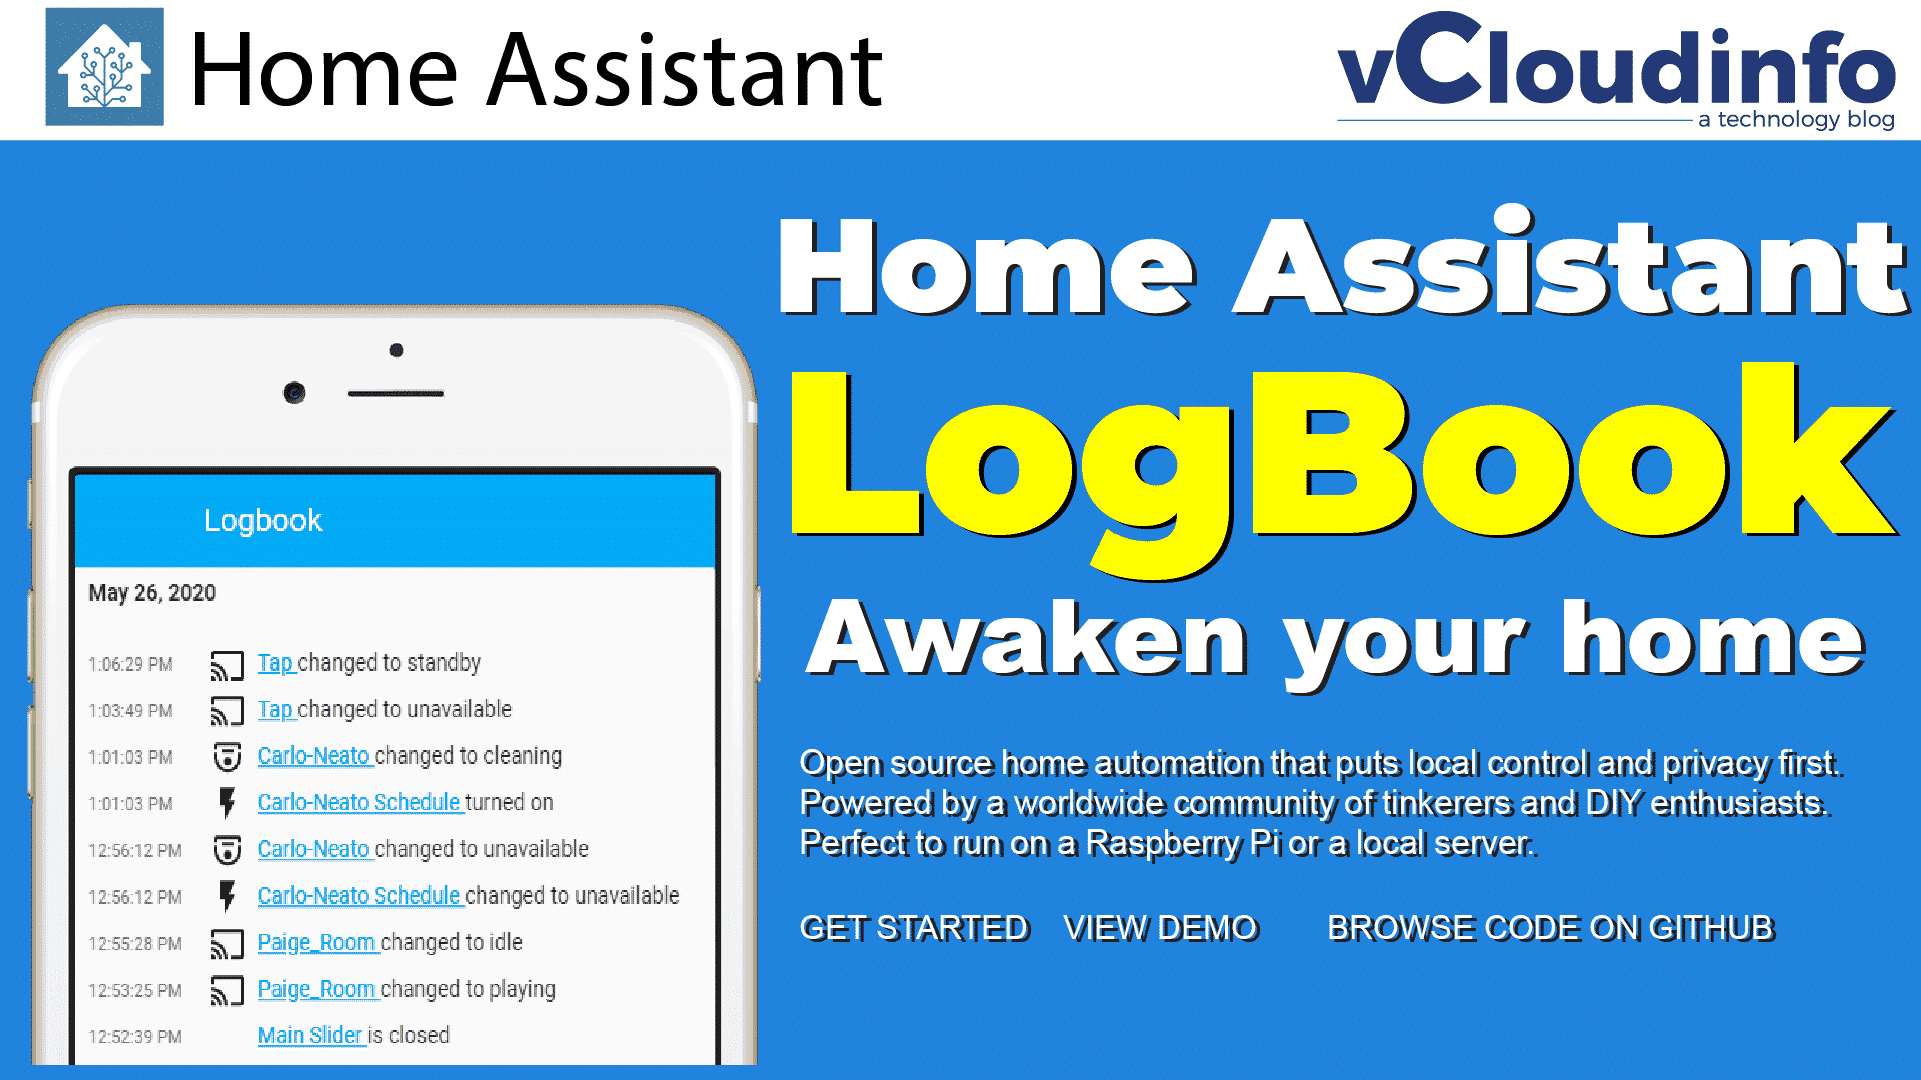 The Home Assistant Logbook 1